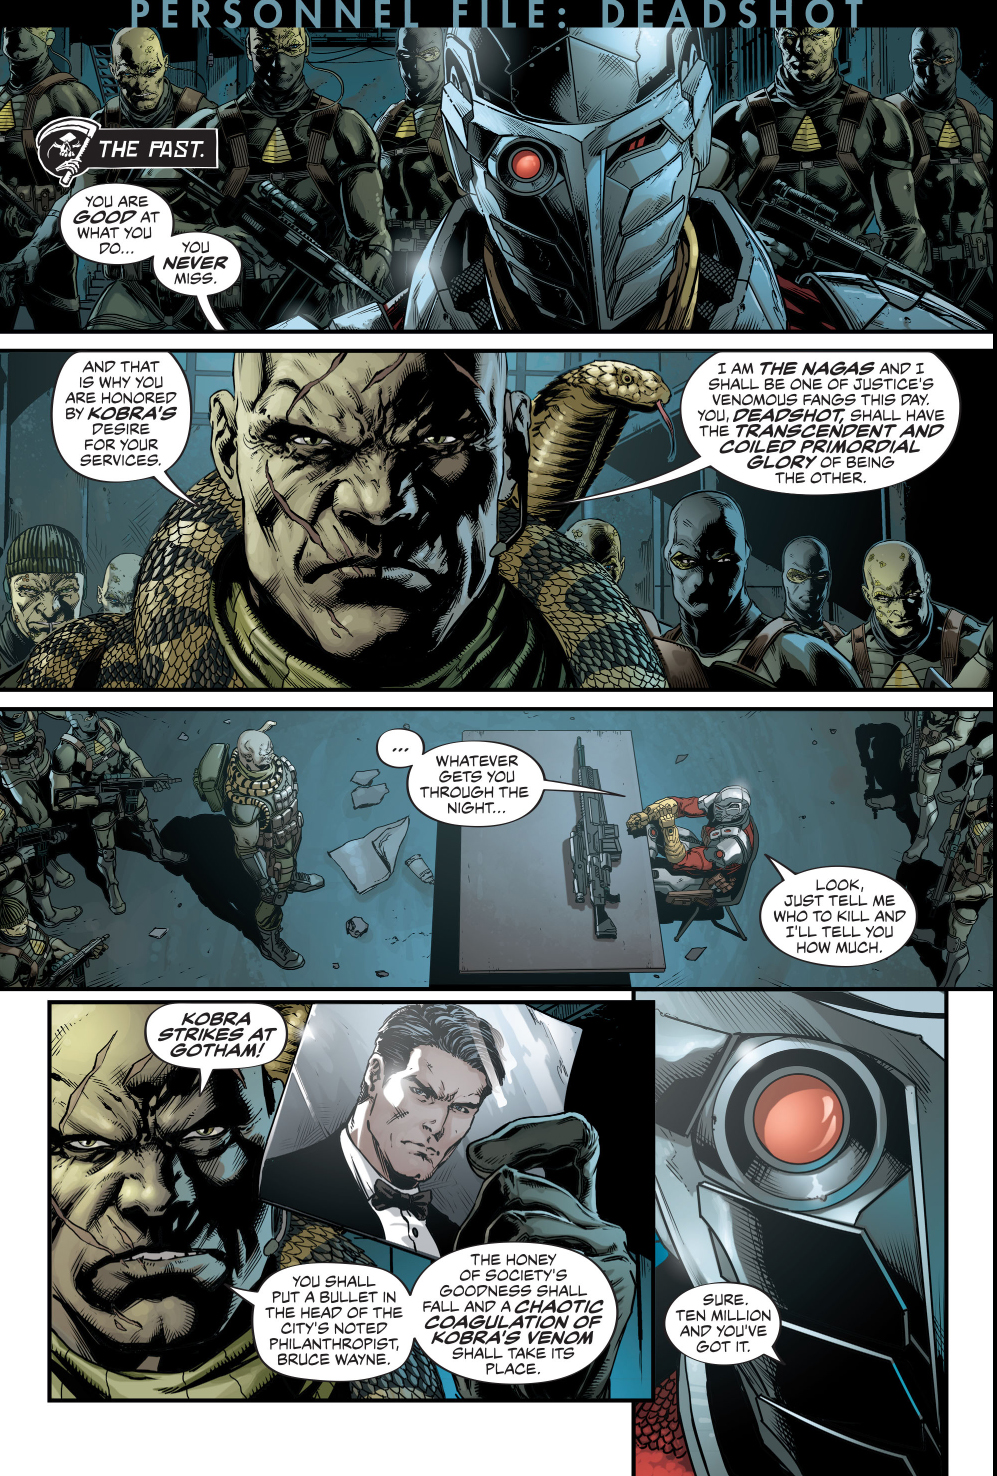 deadshot's background story (rebirth)